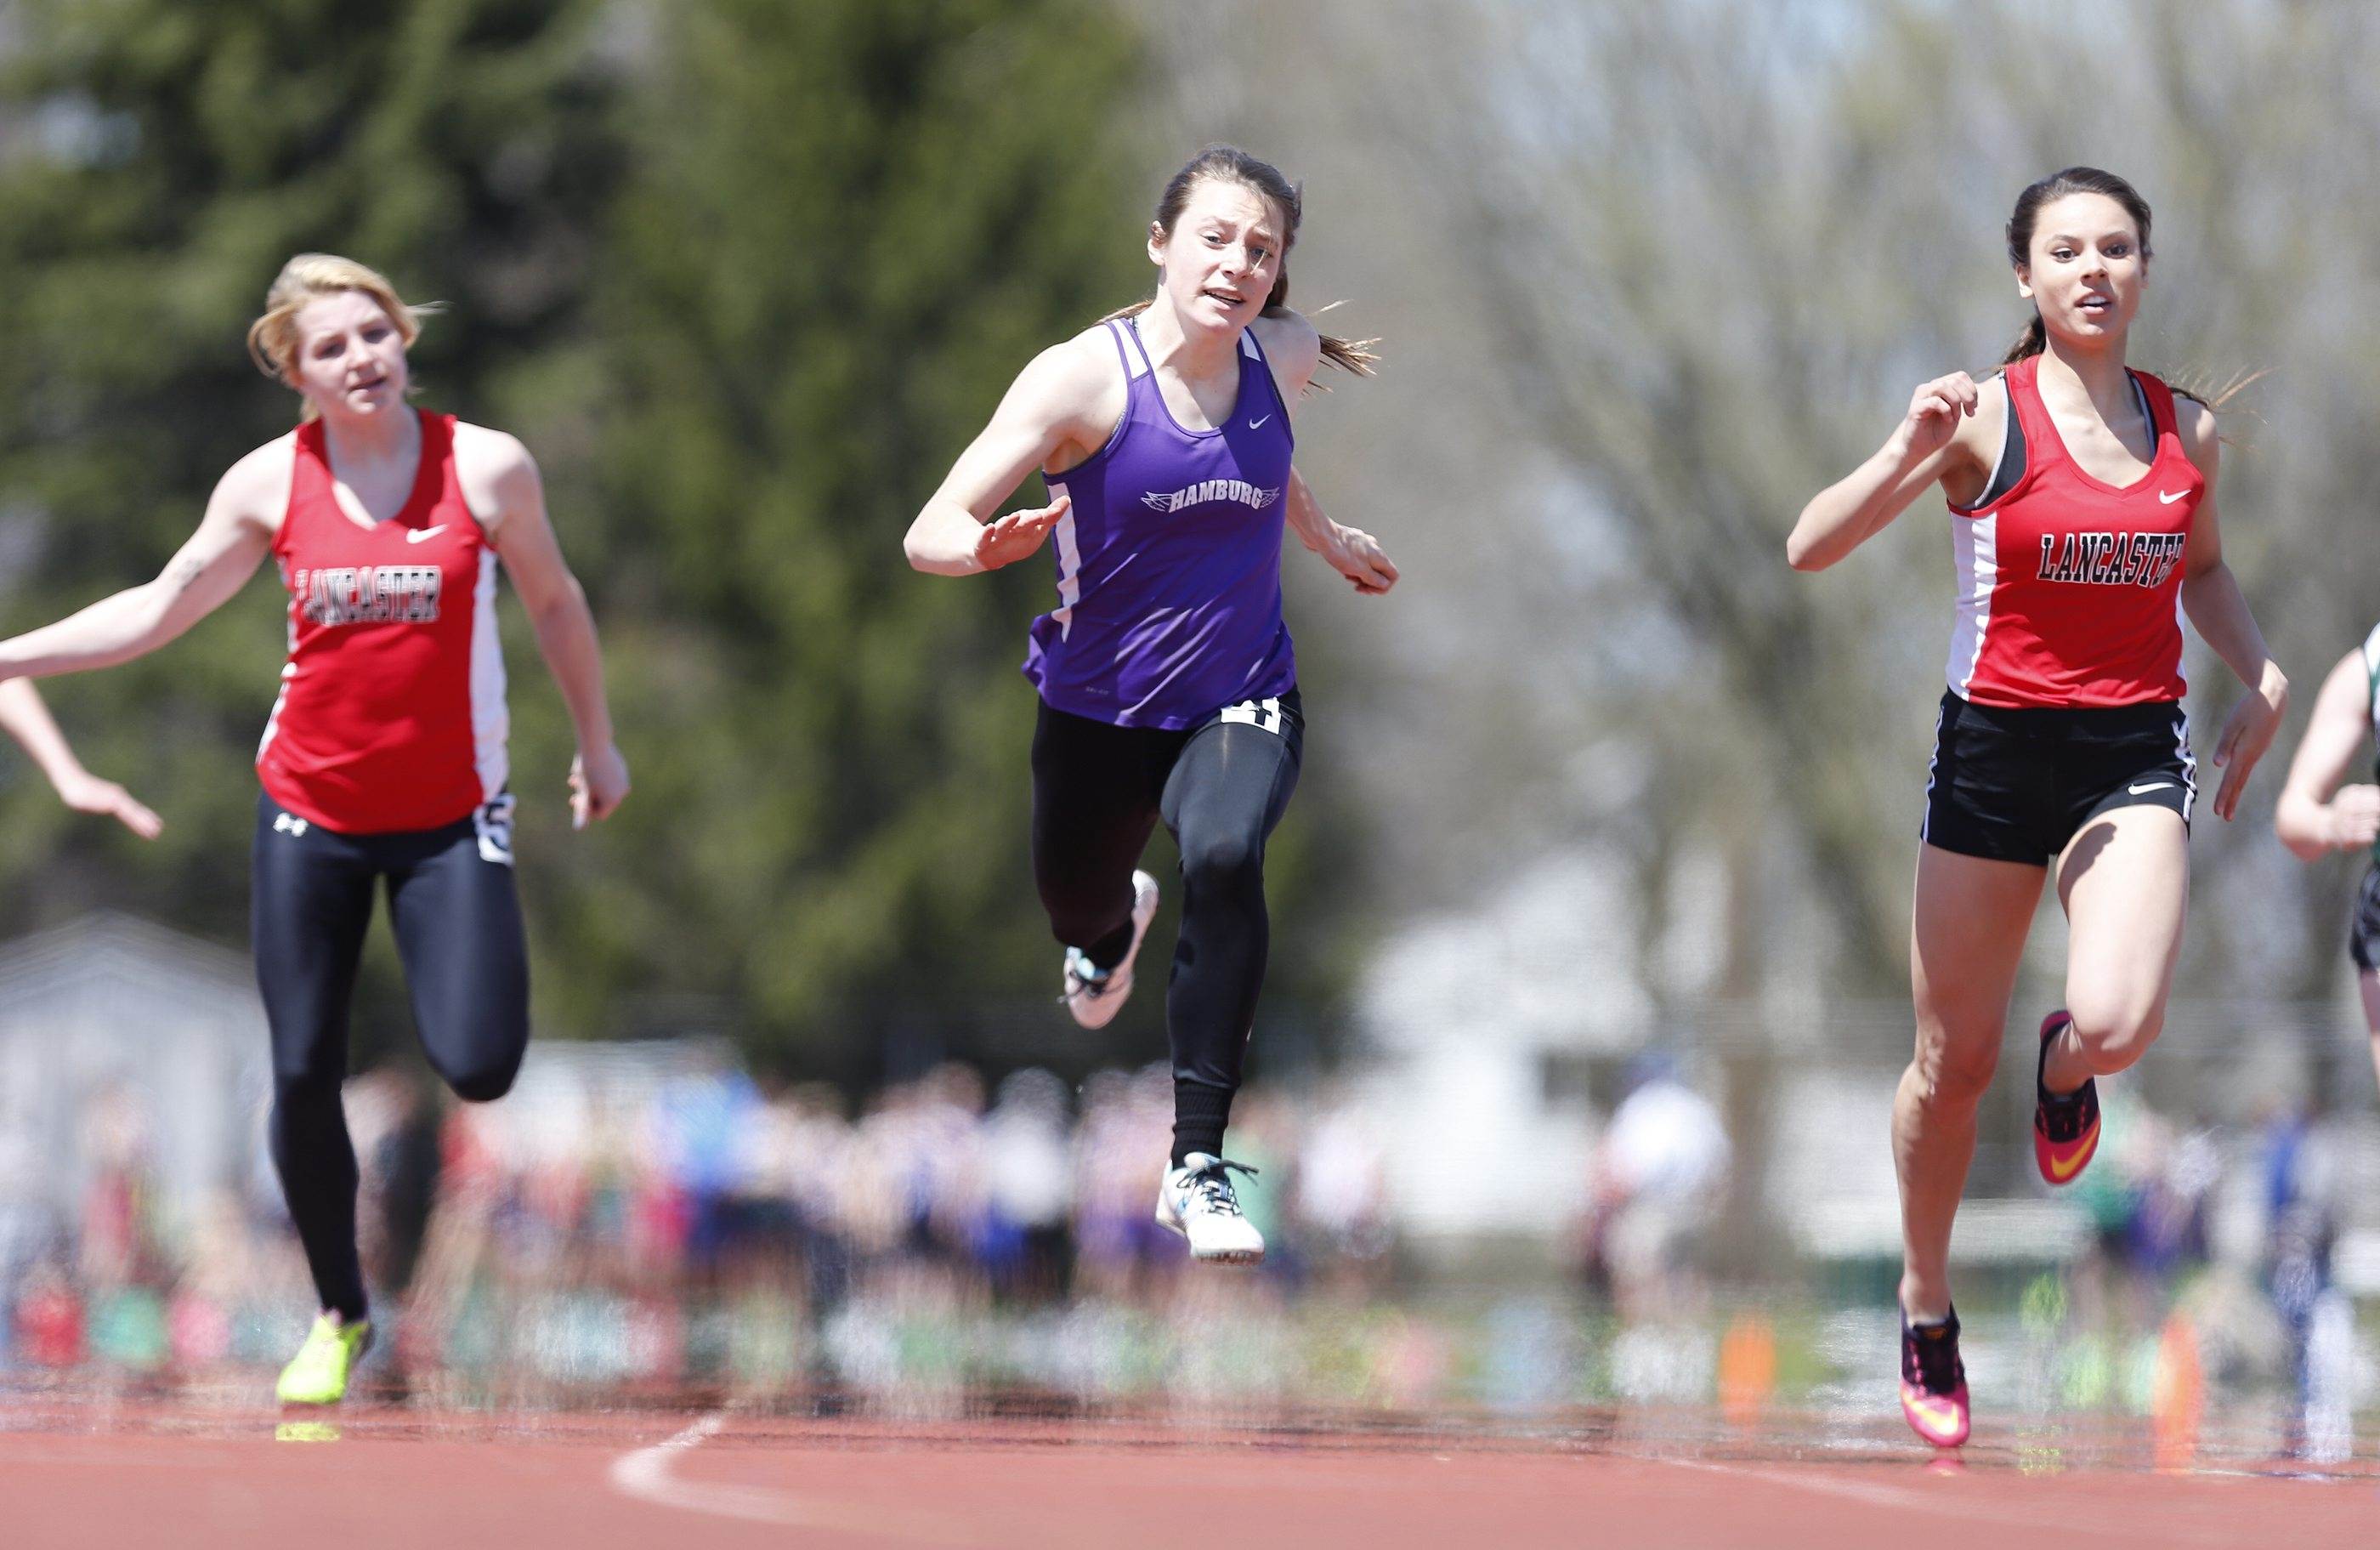 Hamburg's Amy Villarini took the 100-meter dash Saturday at the Pioneer Invitational, one of four wins for her. She has school records in the 200 and 400.